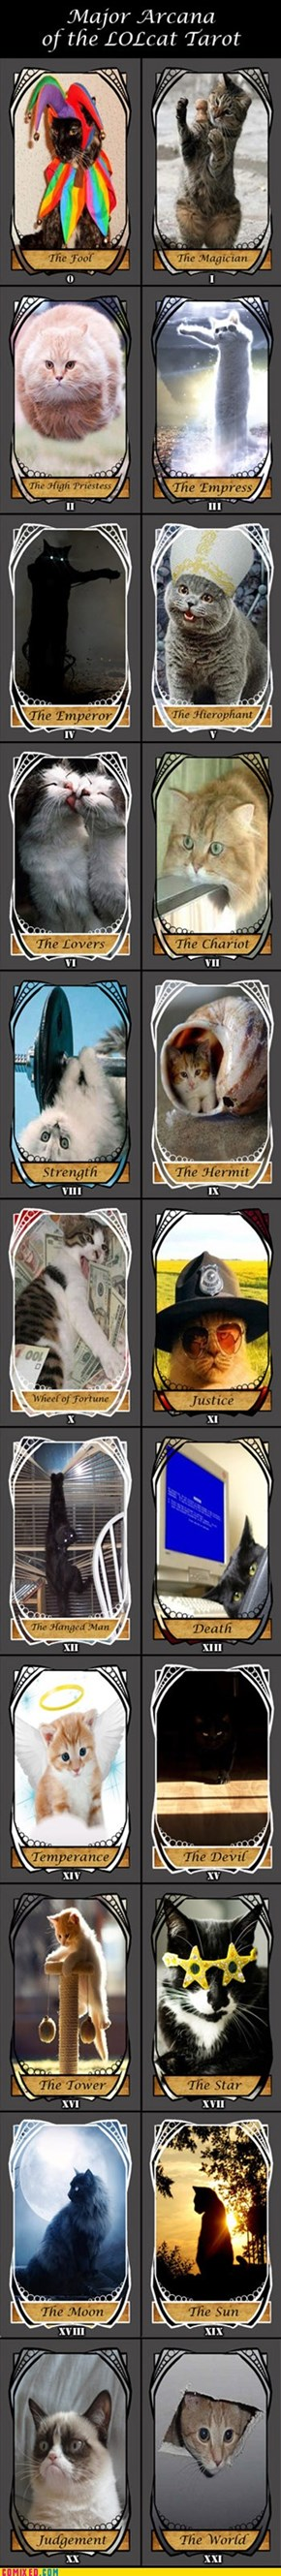 The LOLcat Tarot